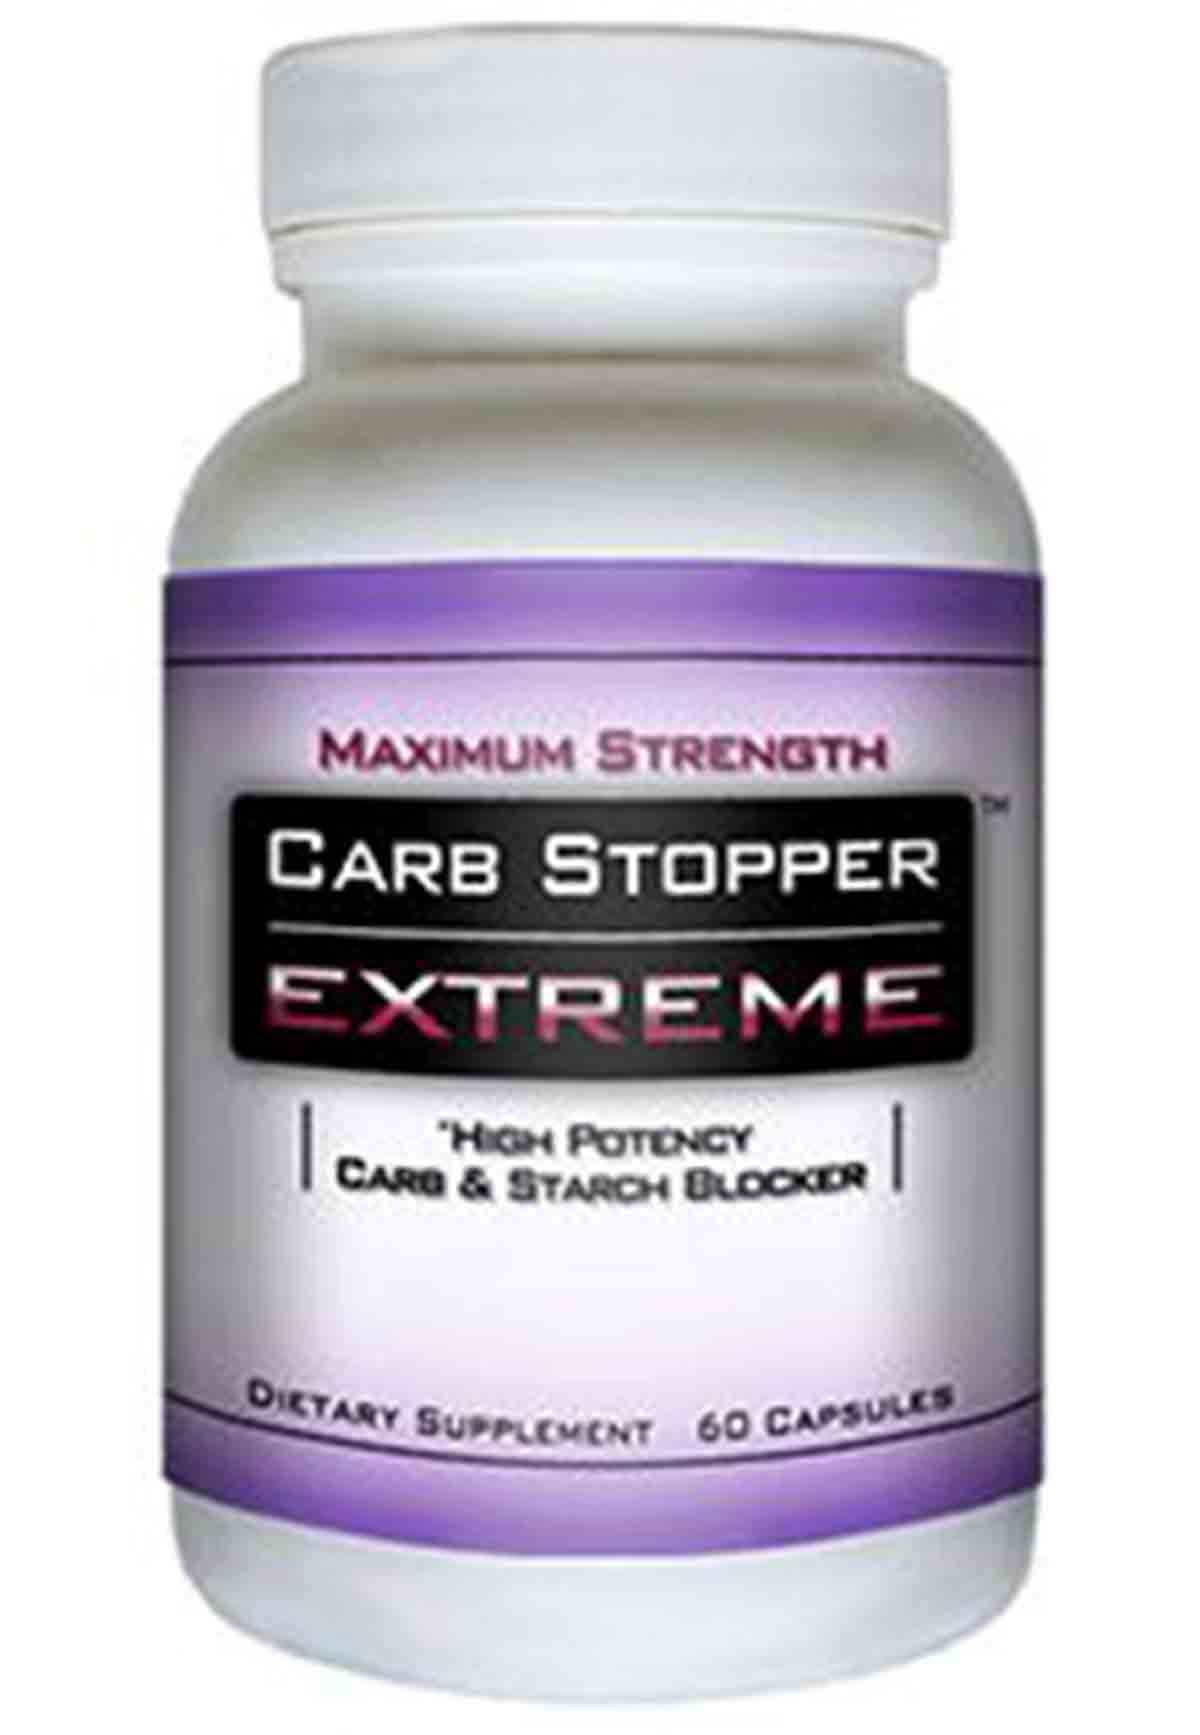 Carb Stopper Extreme